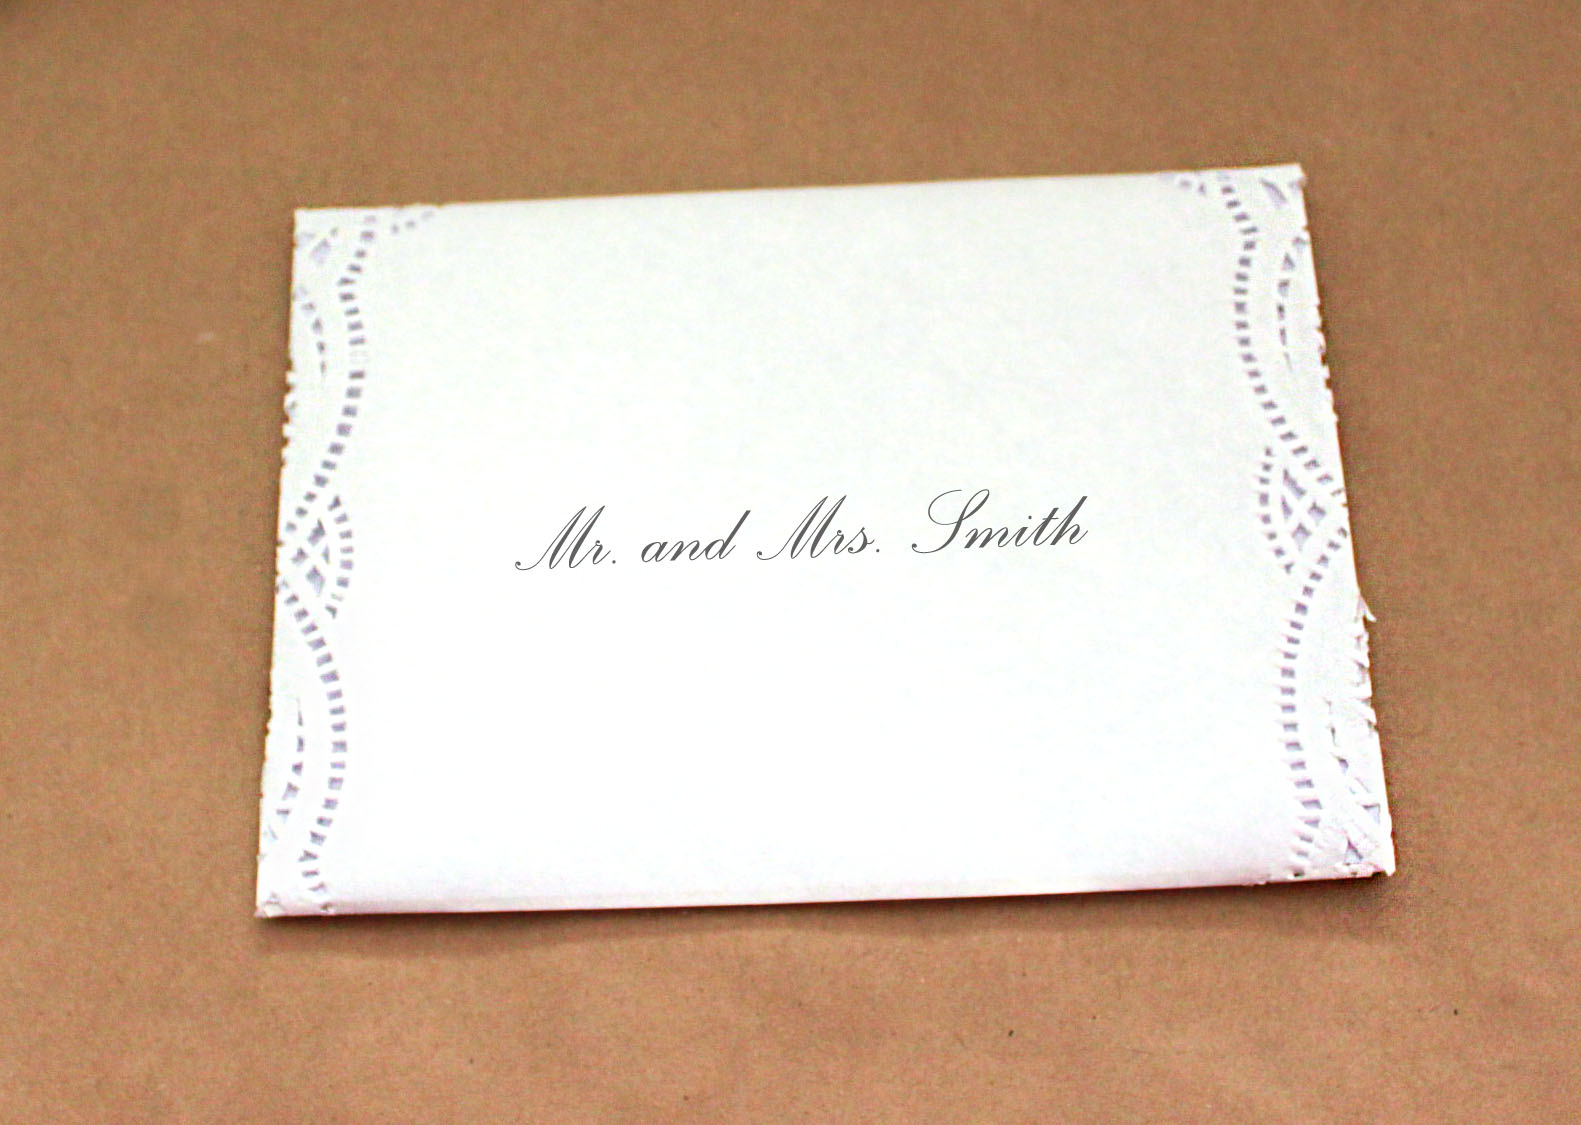 How To Label A Wedding Gift Envelope : ... to help fold the rest of those envelopes and start addressing them